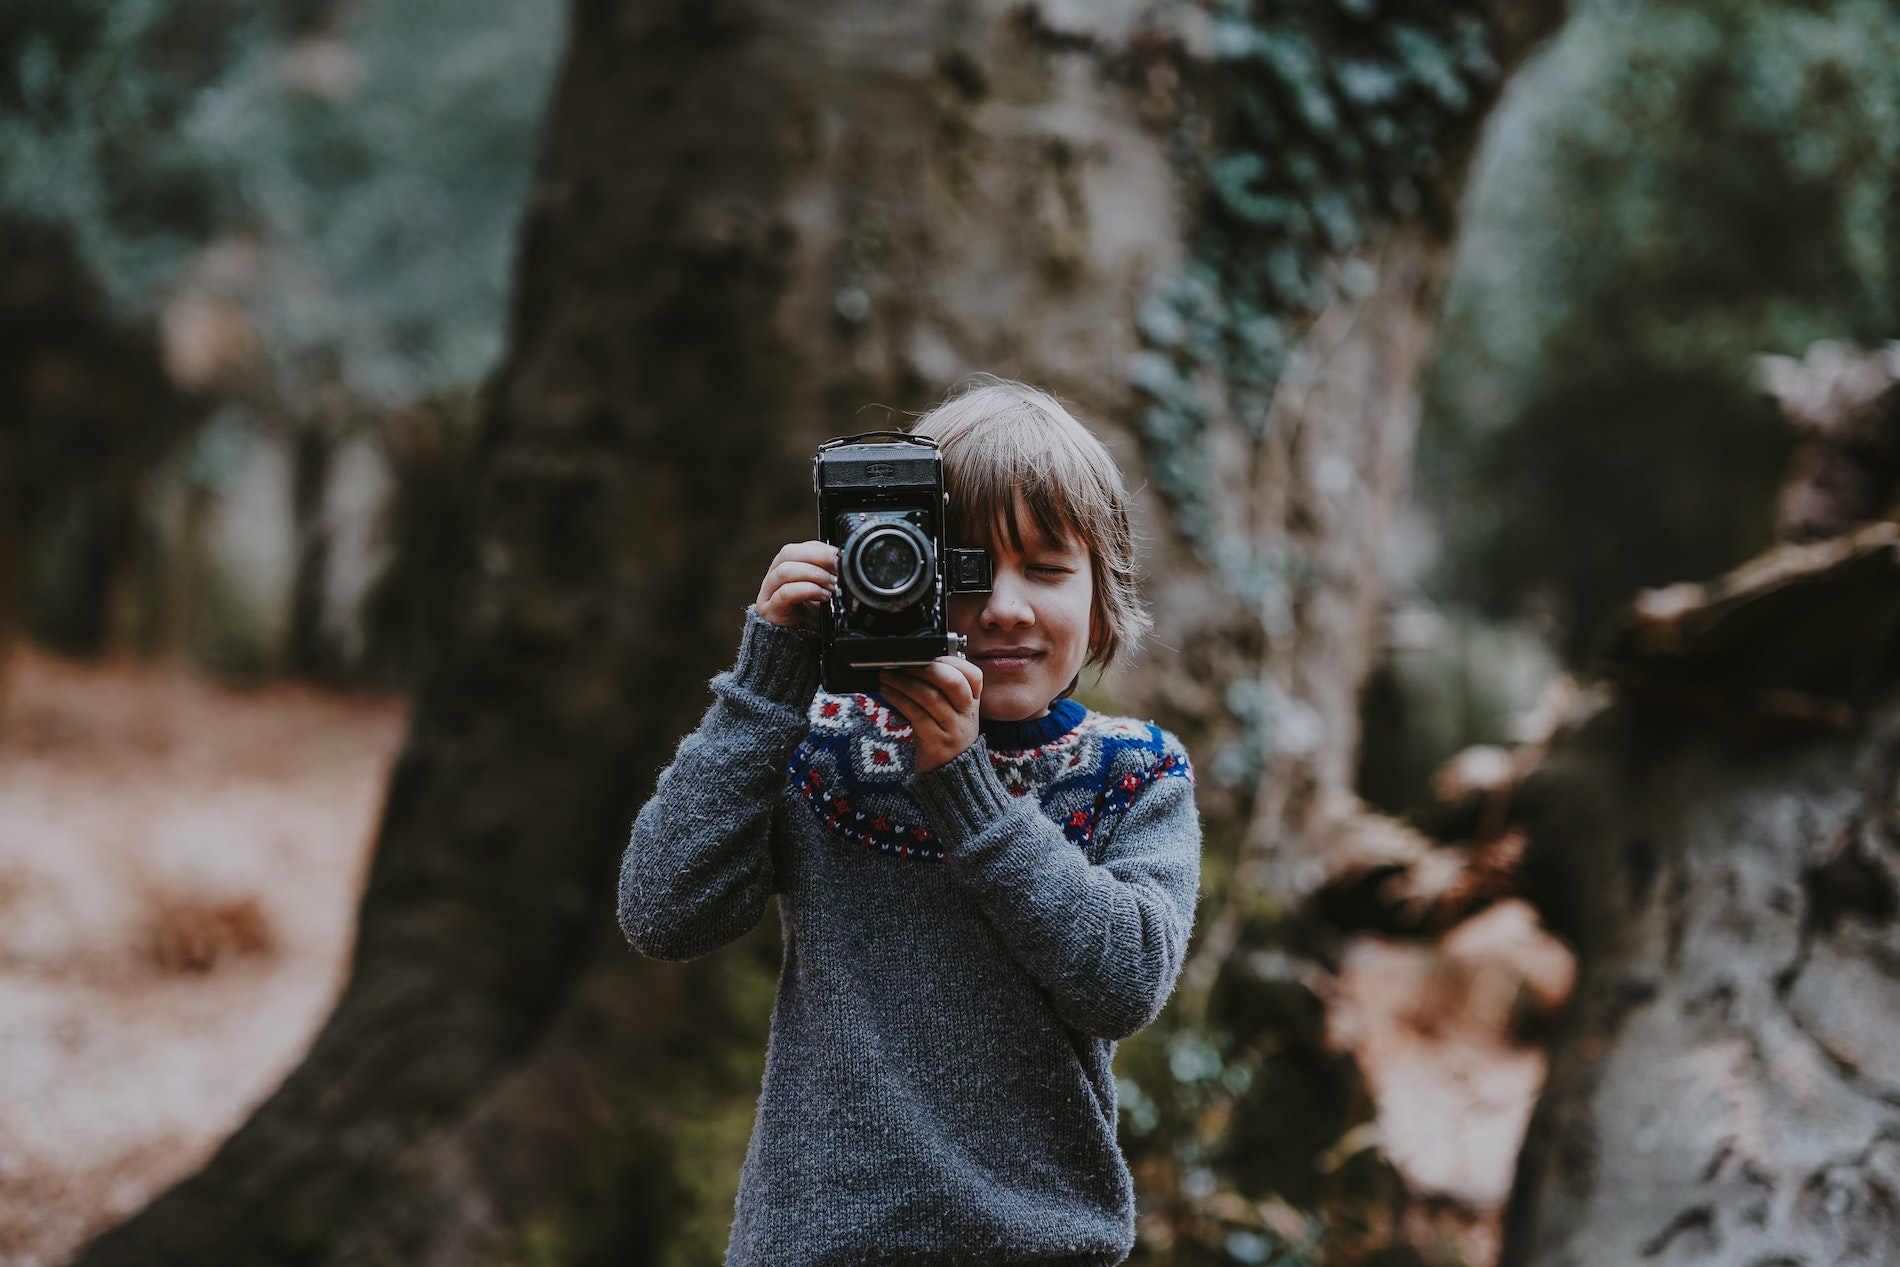 A Young boy taking a picture using an old camera